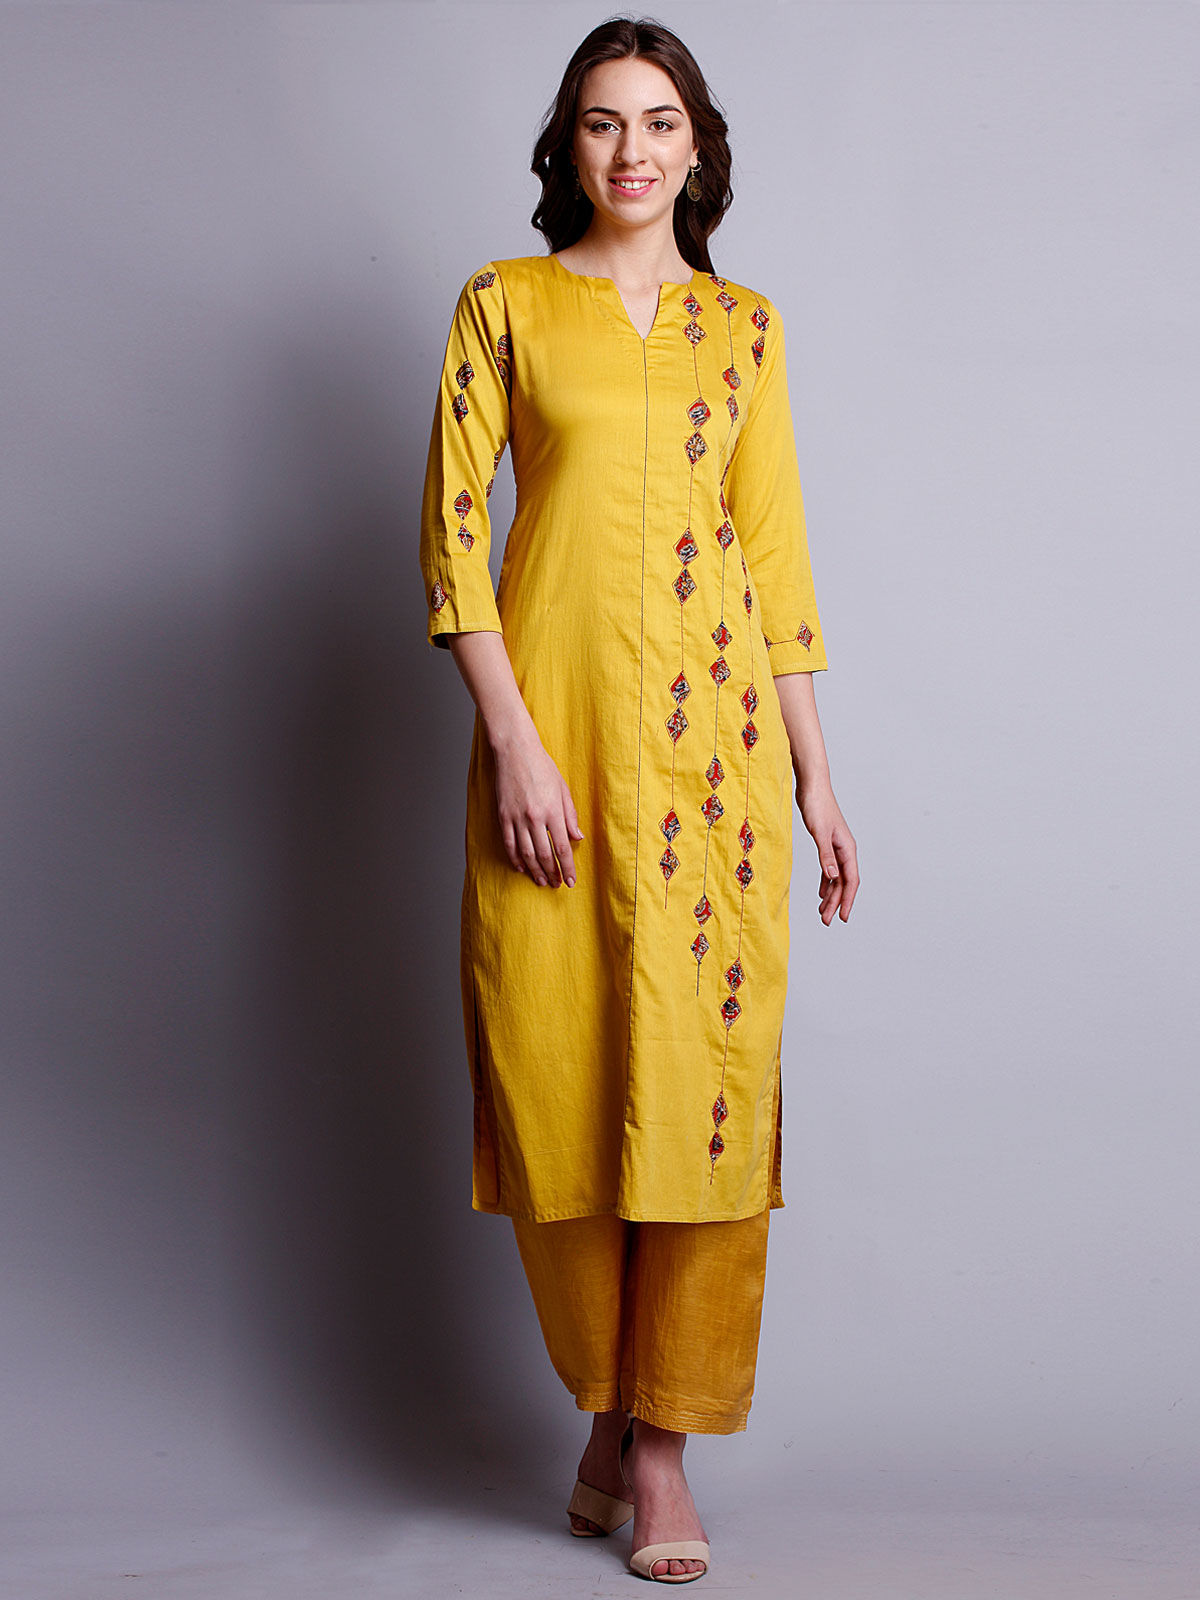 Mustard yellow reverse applique cotton satin kurta with side detailing